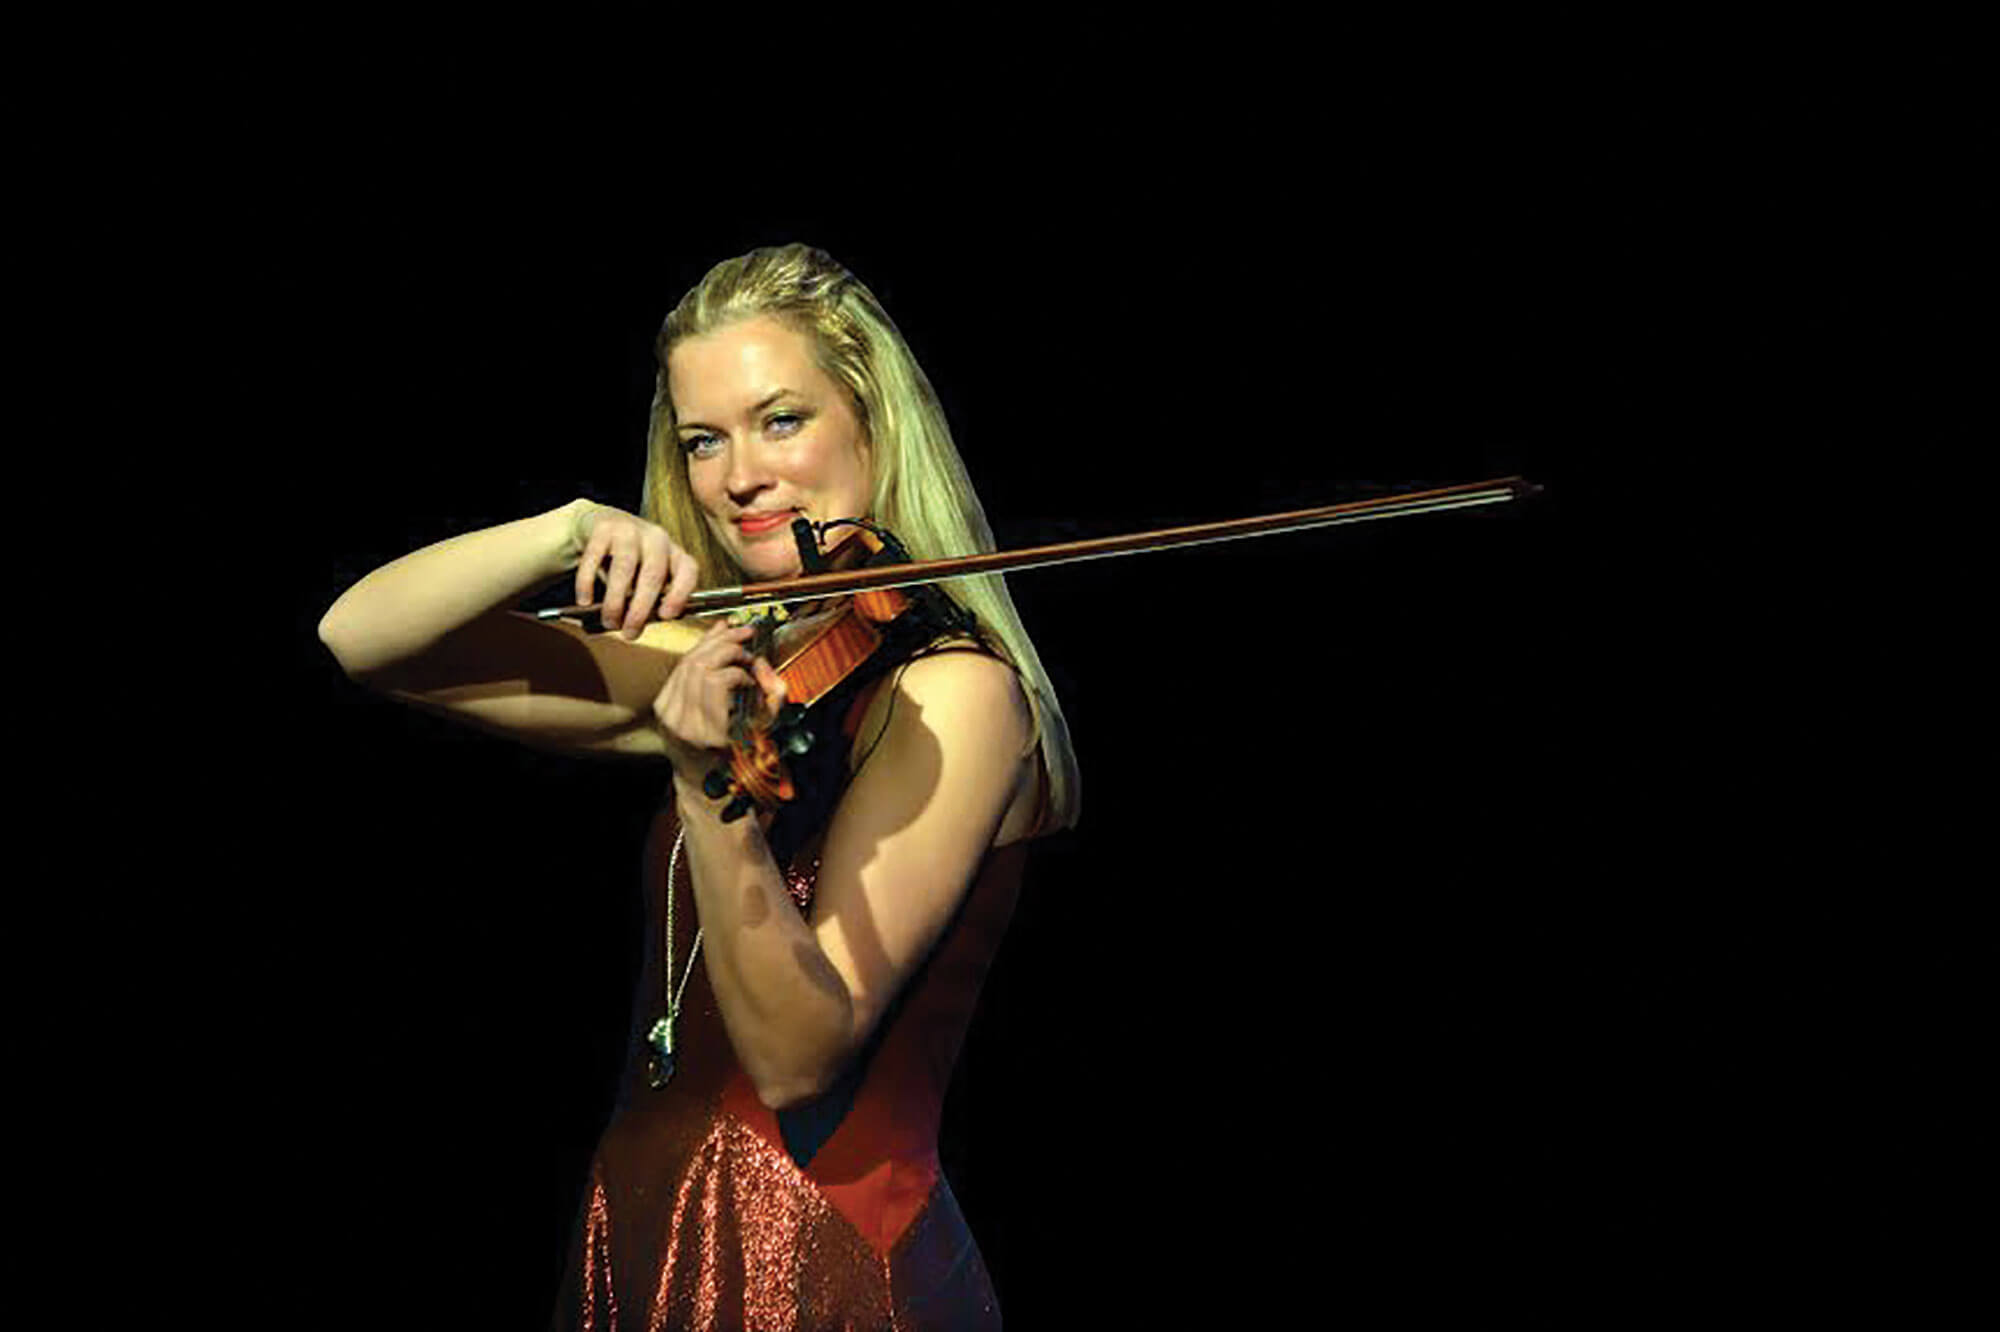 Lizzie Ball - violinist, vocalist, educator, and concert producer